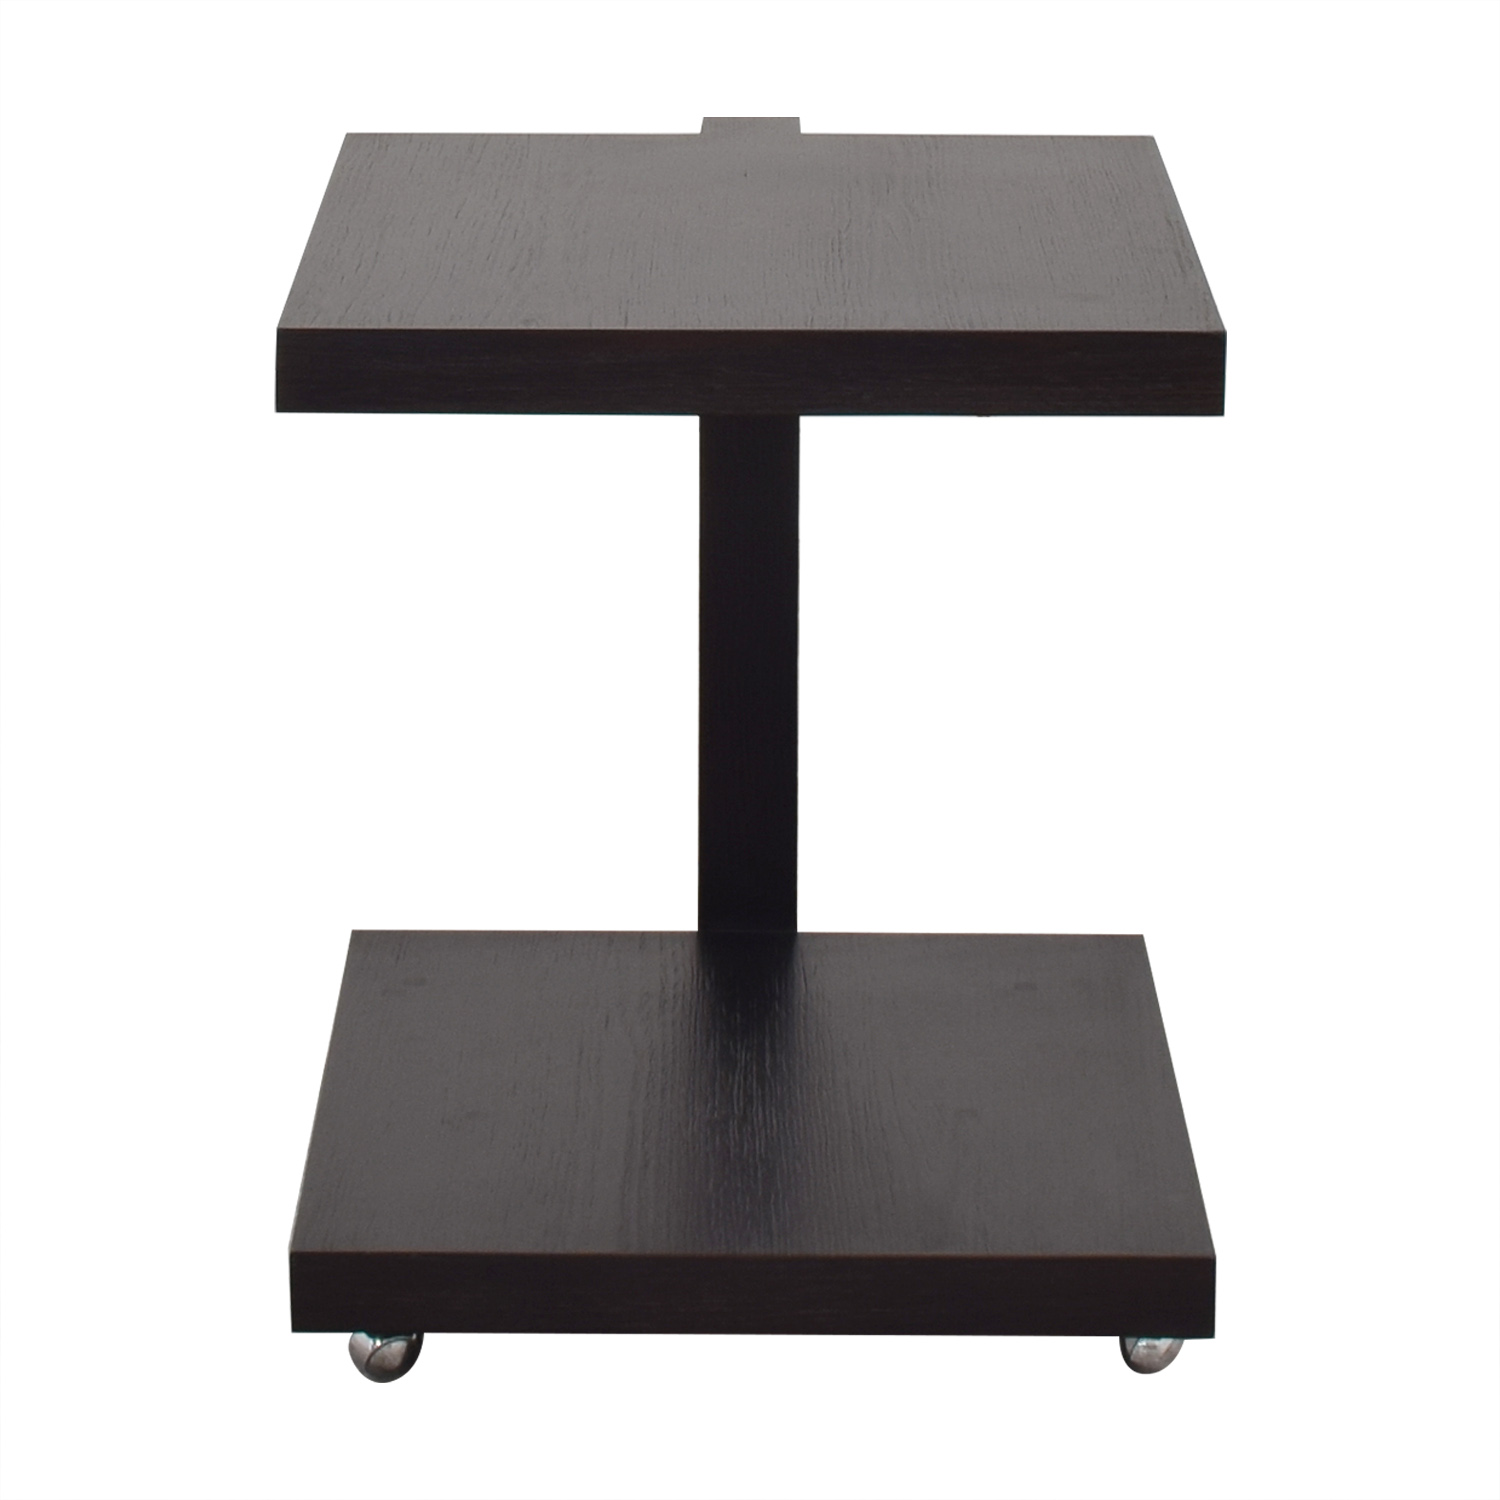 Moura Starr Moura Starr Floating End Table on sale